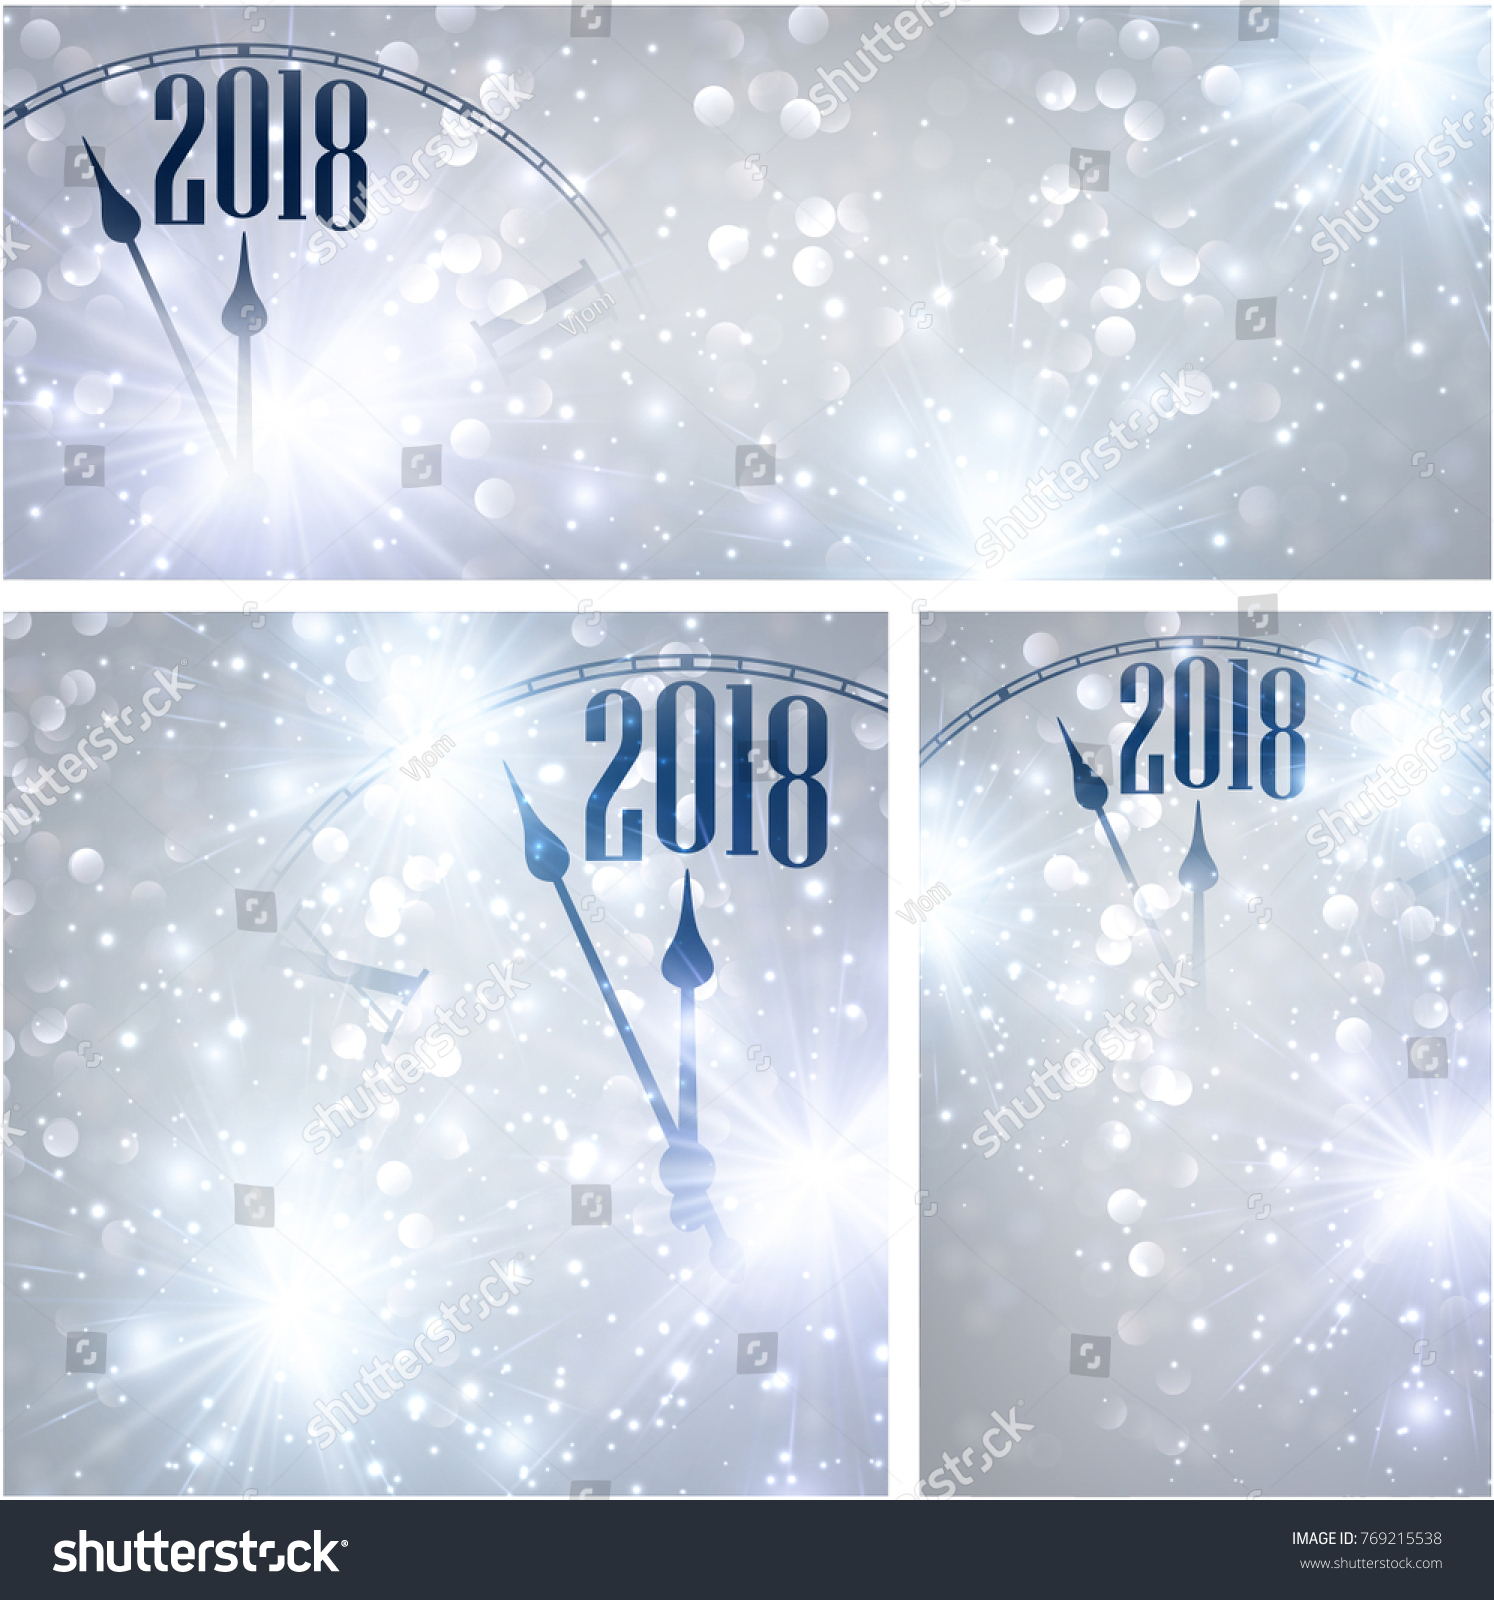 silver 2018 new year shining backgrounds set with clock vector christmas illustration